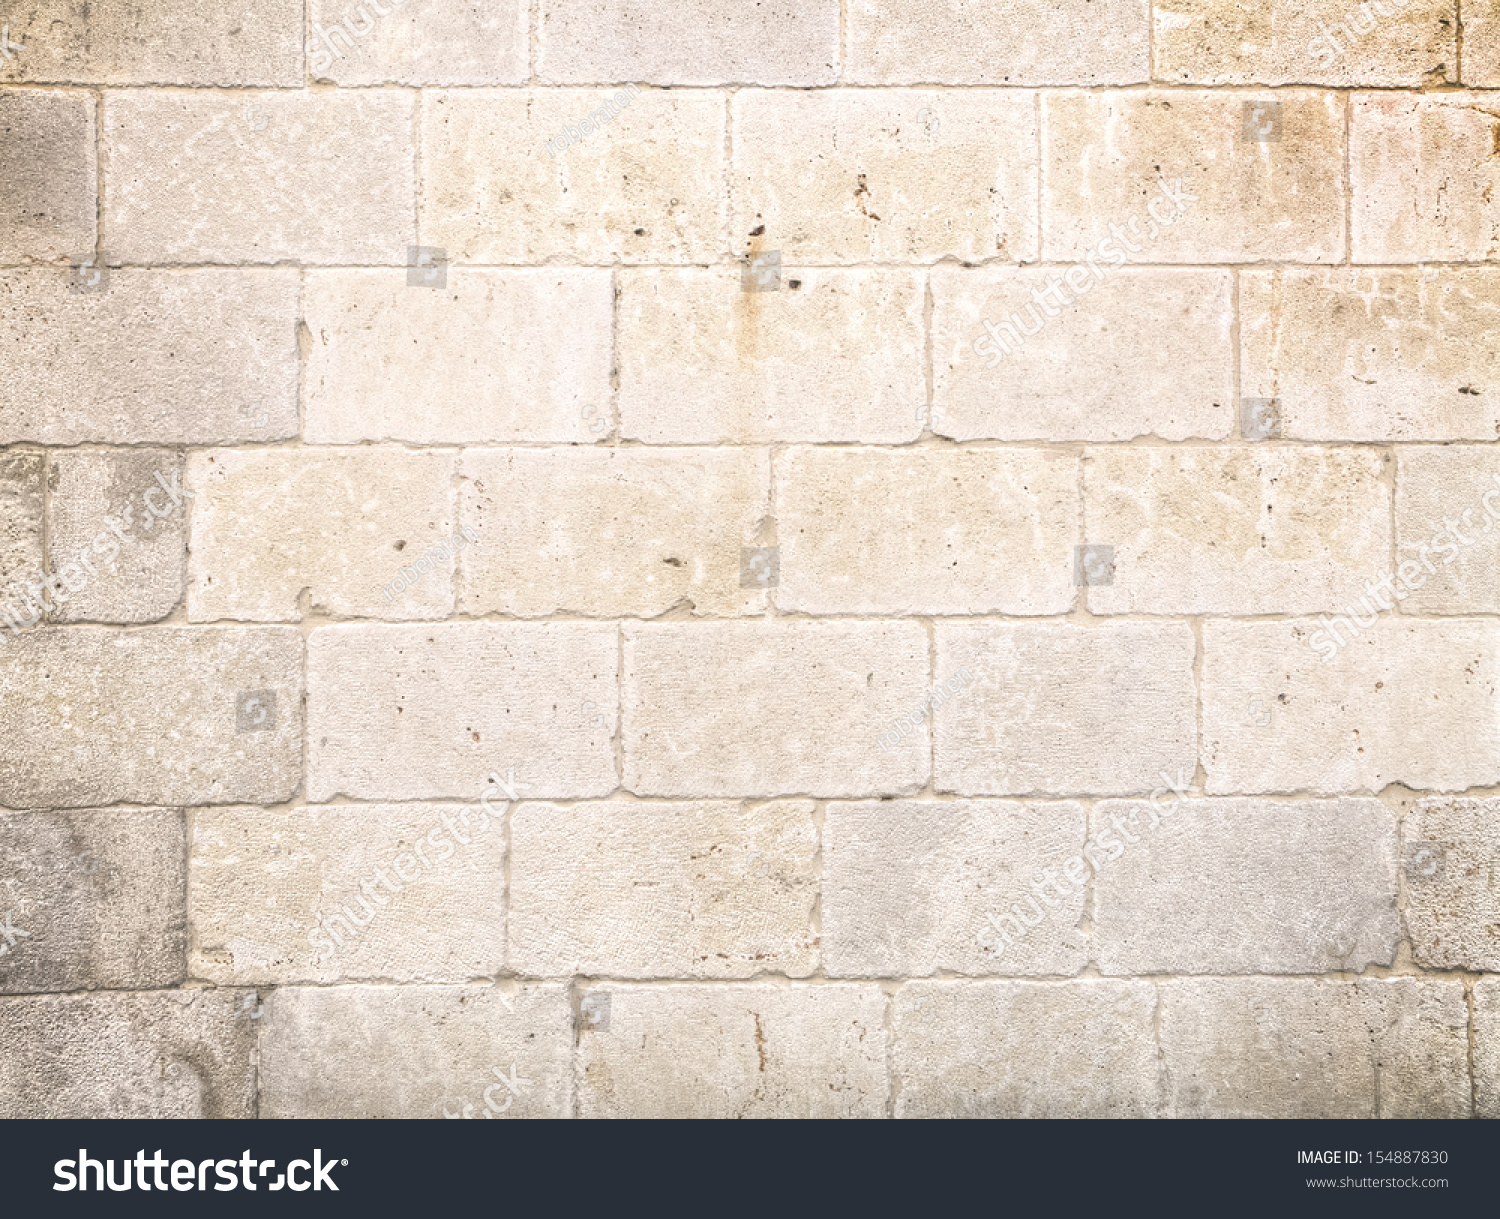 Stone Block Wall Terraria : Stone block wall of old building stock photo shutterstock